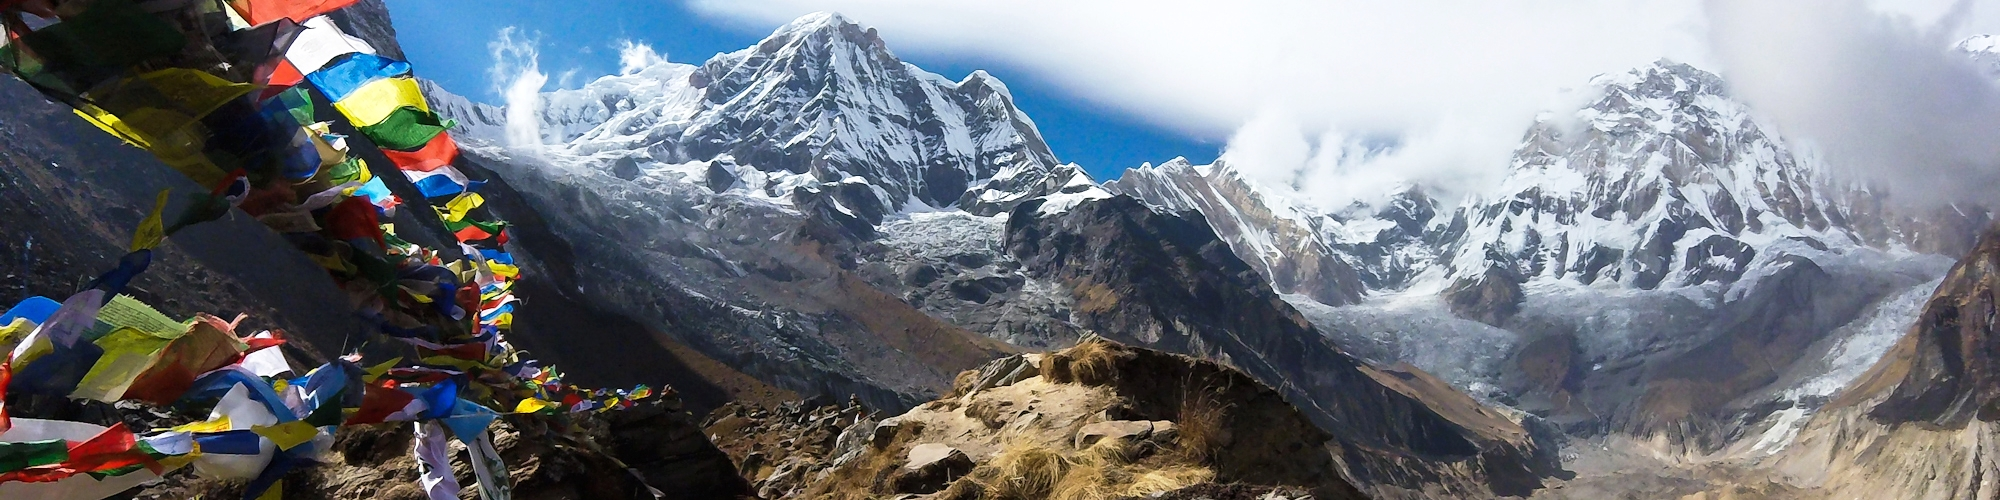 Annapurna Base Camp: Studying the Brain at High Altitude